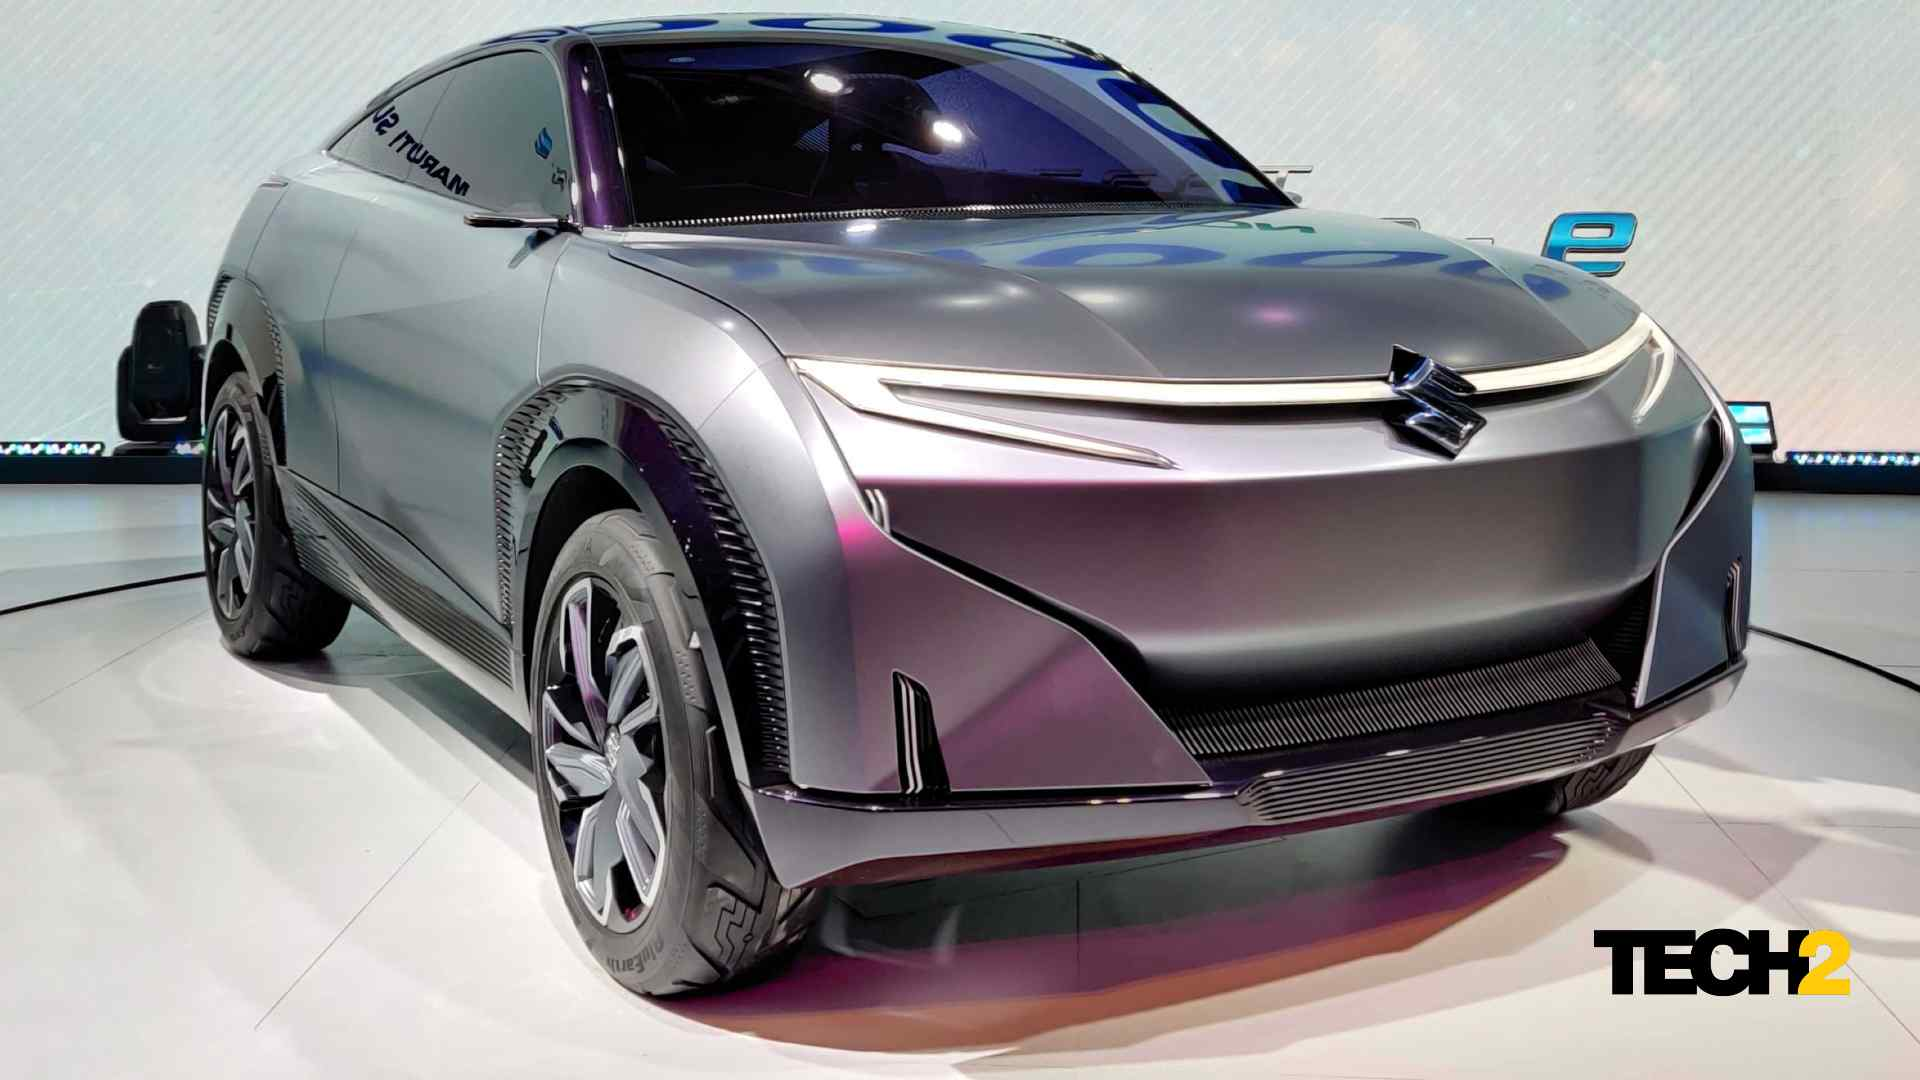 Suzuki's India plans for the next five years revealed, to focus on electrification and SUVs